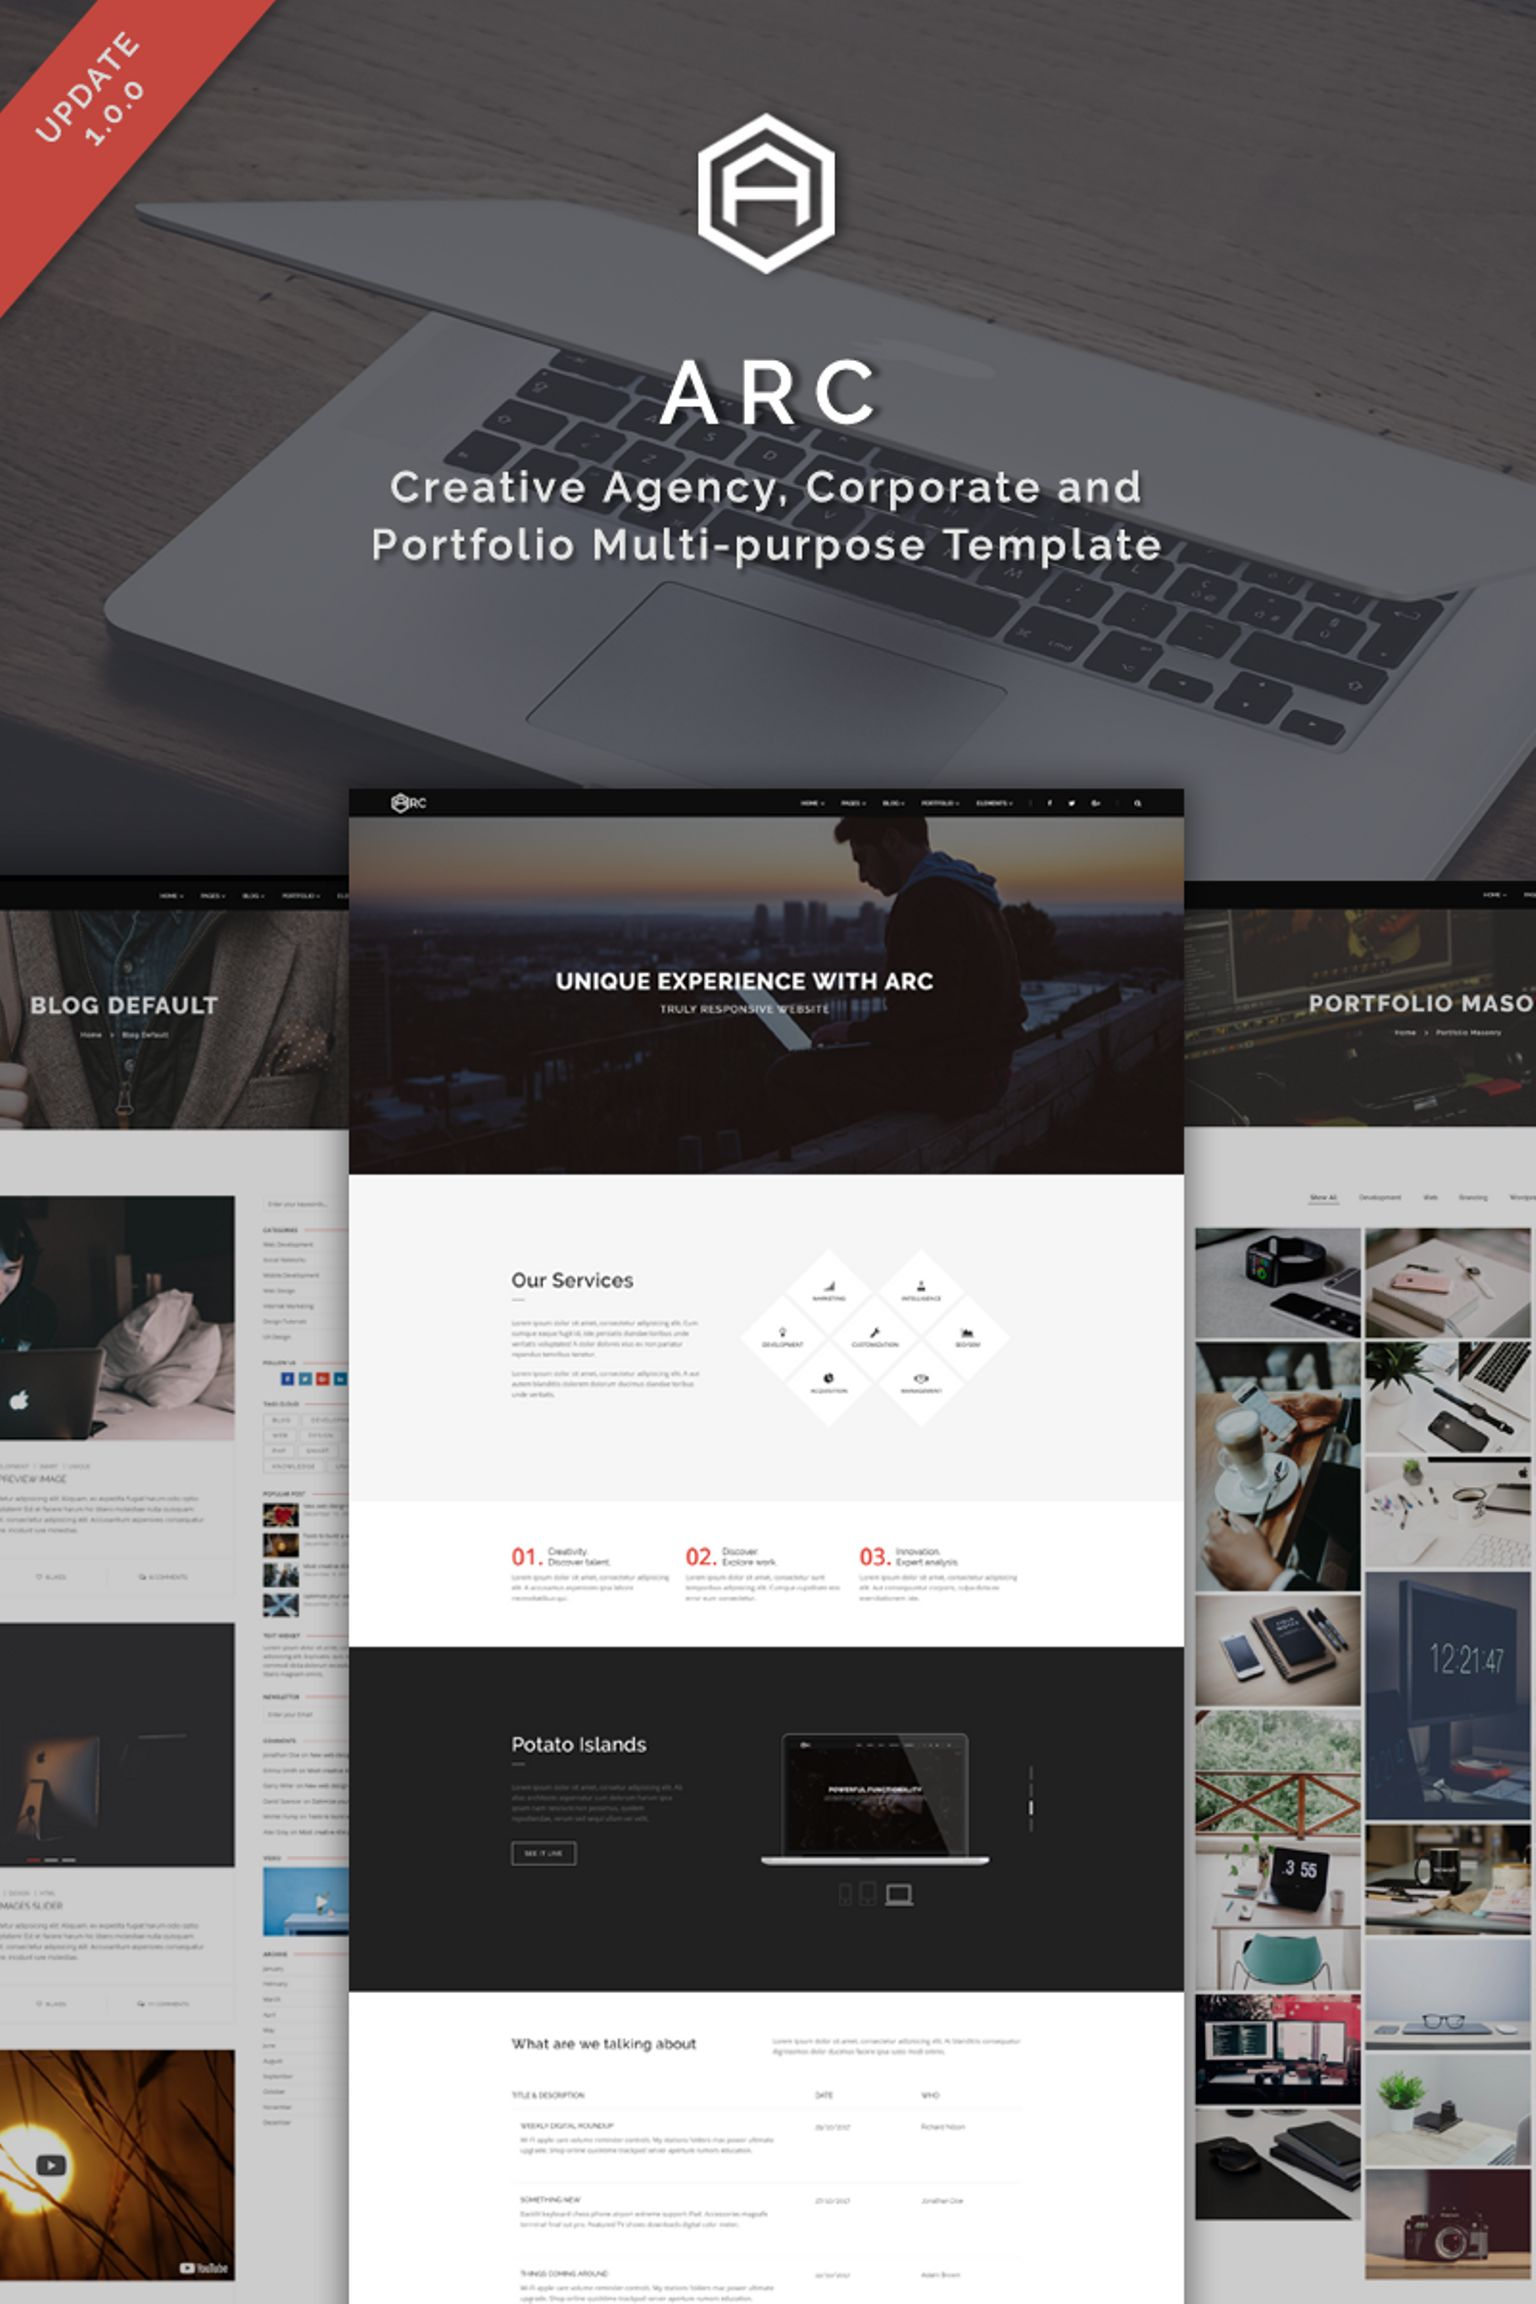 ARC - Creative Agency, Corporate and Portfolio Multi-purpose Website ...